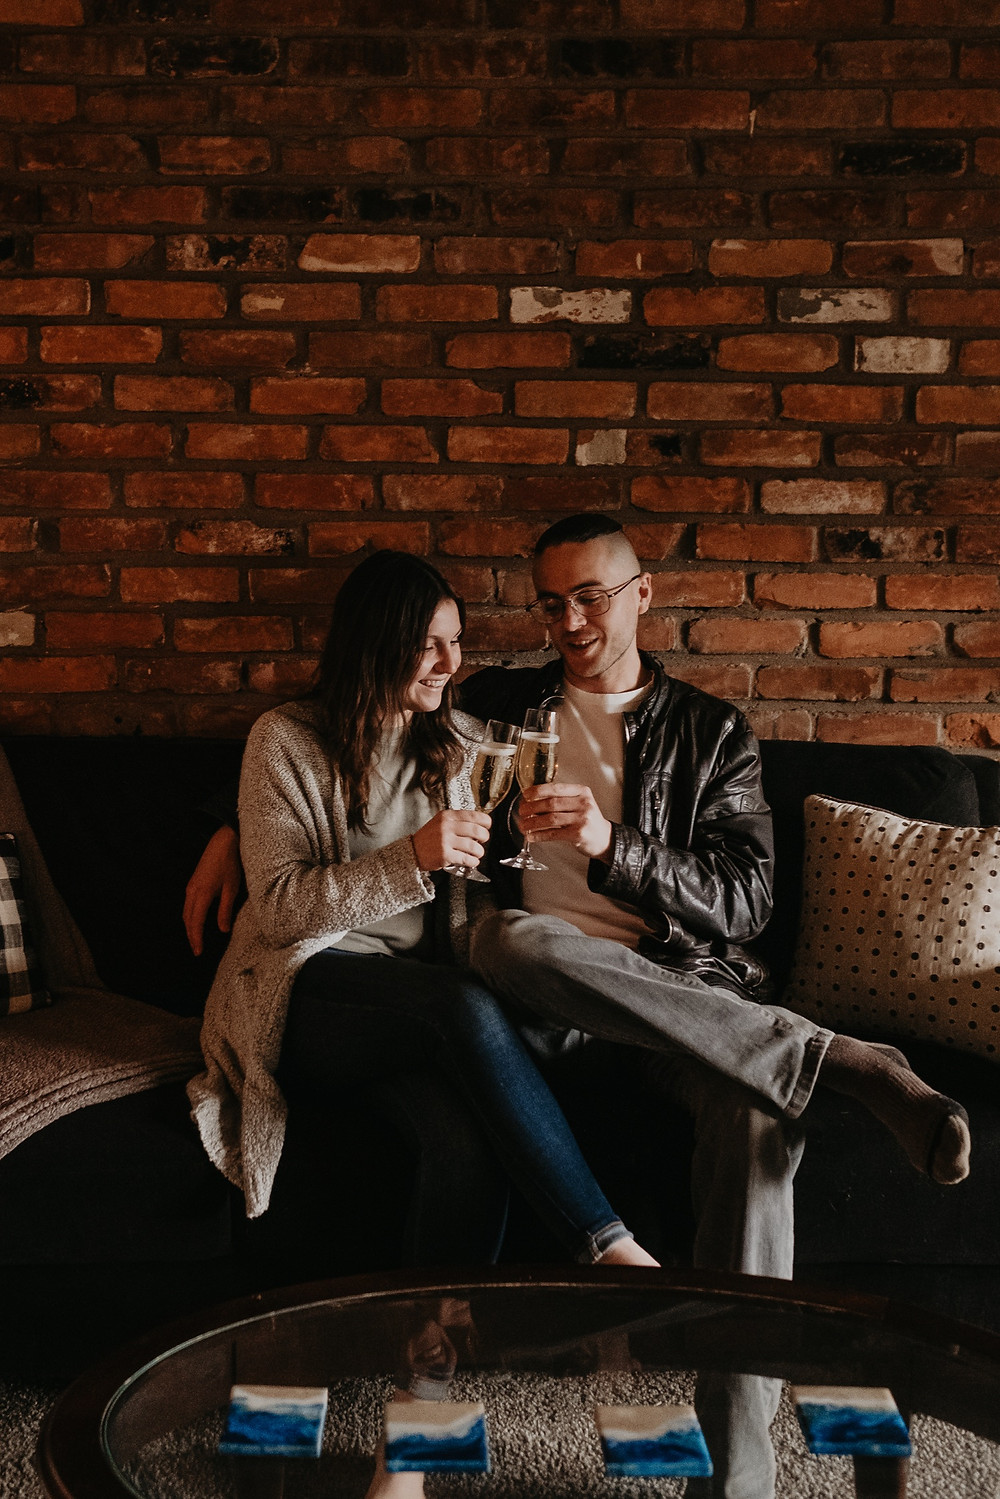 Couple sharing champagne toast on couch at home. Photographed by Nicole Leanne Photography.